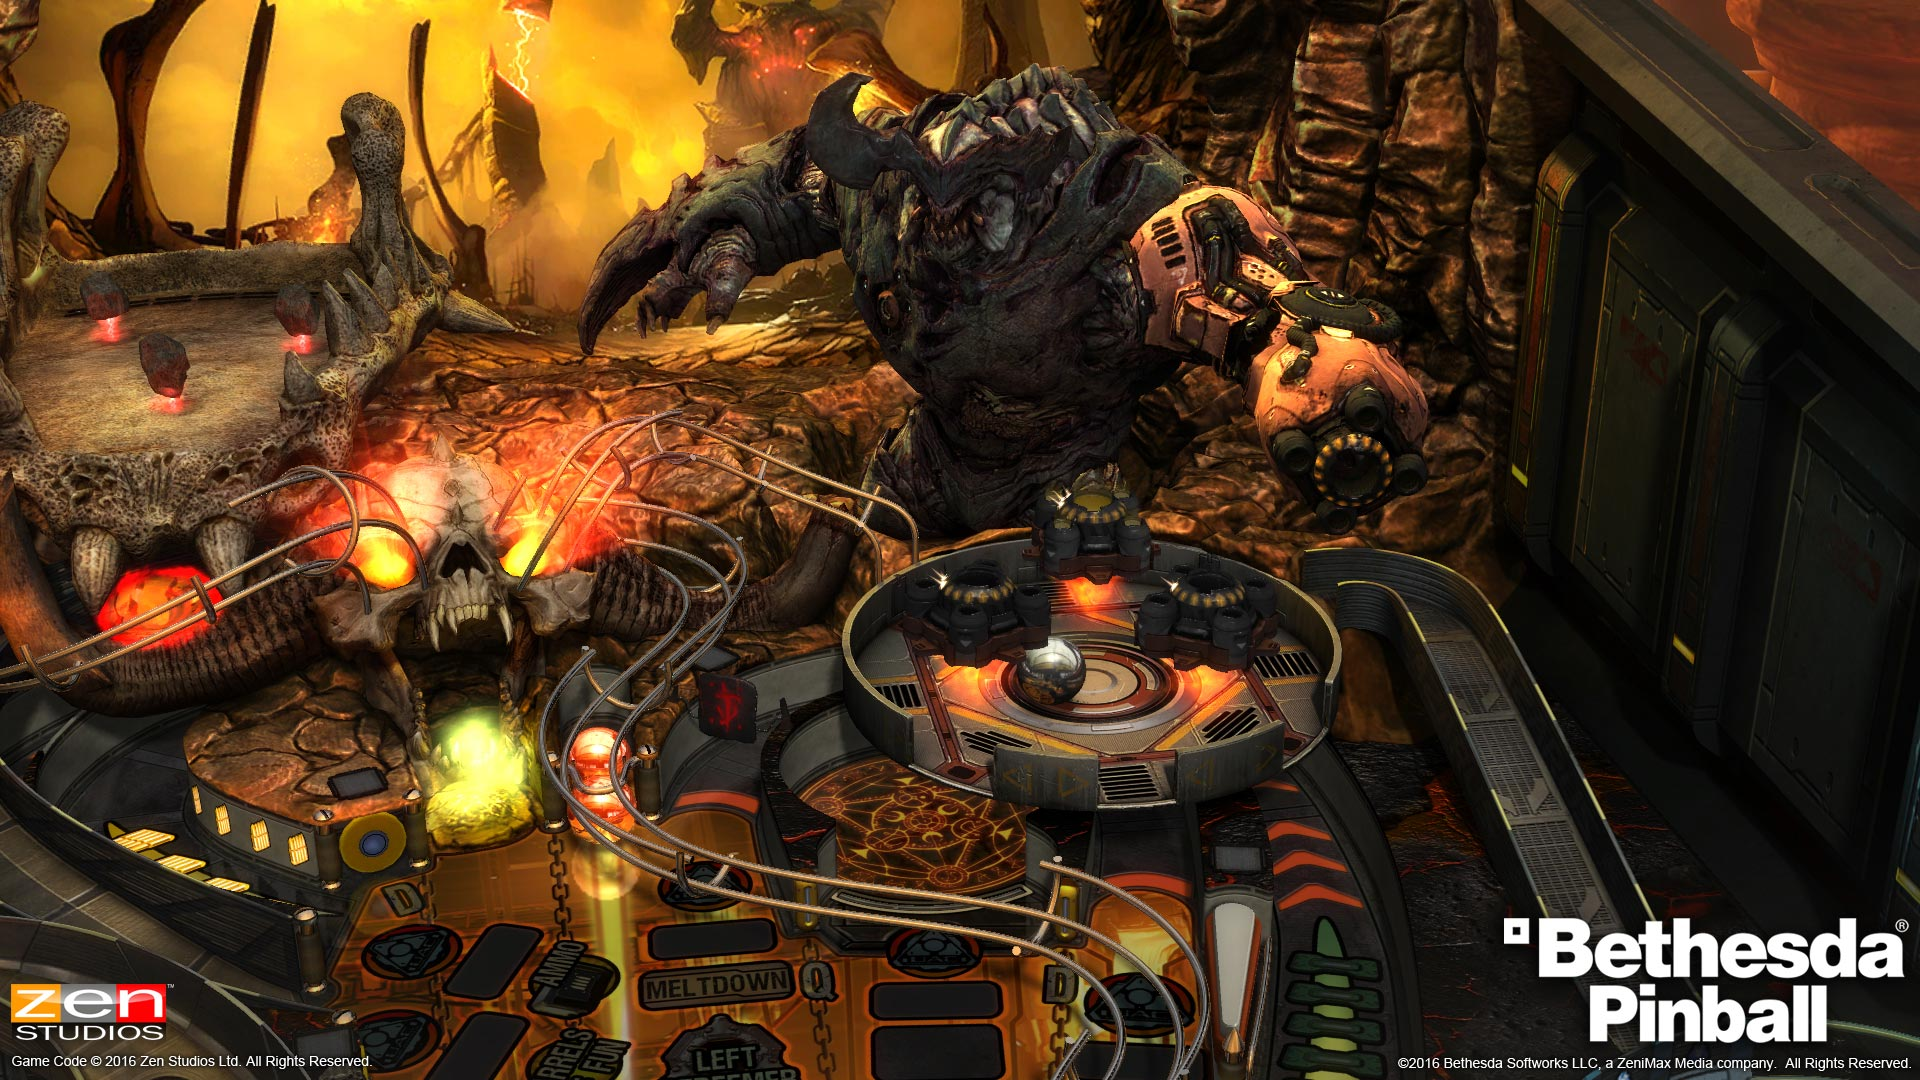 bethesda-pinball-screenshot-3